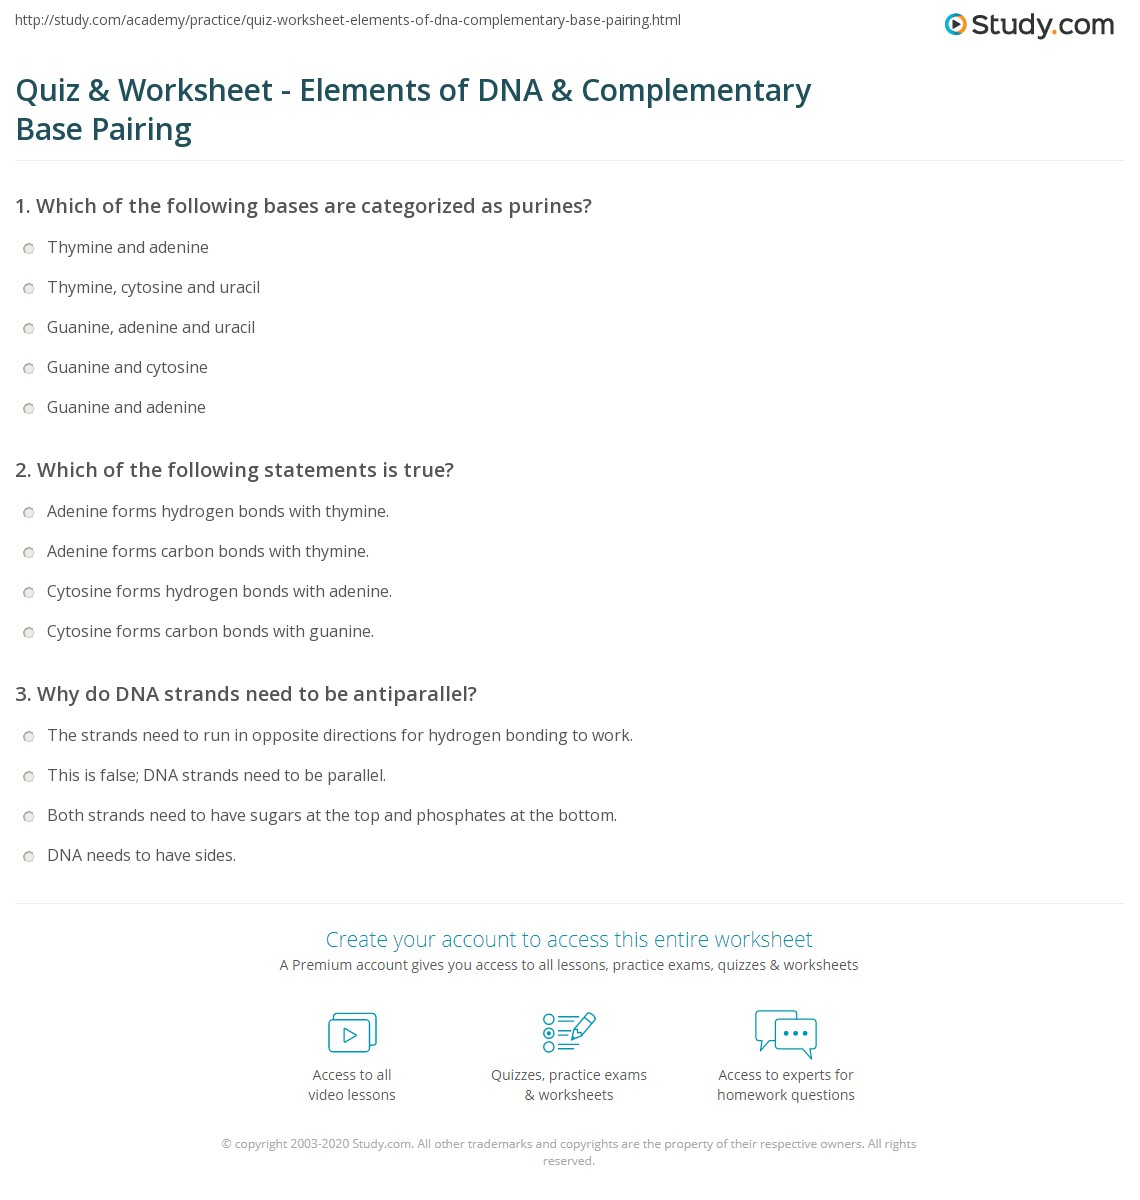 Quiz Worksheet Elements Of Dna Complementary Base Pairing